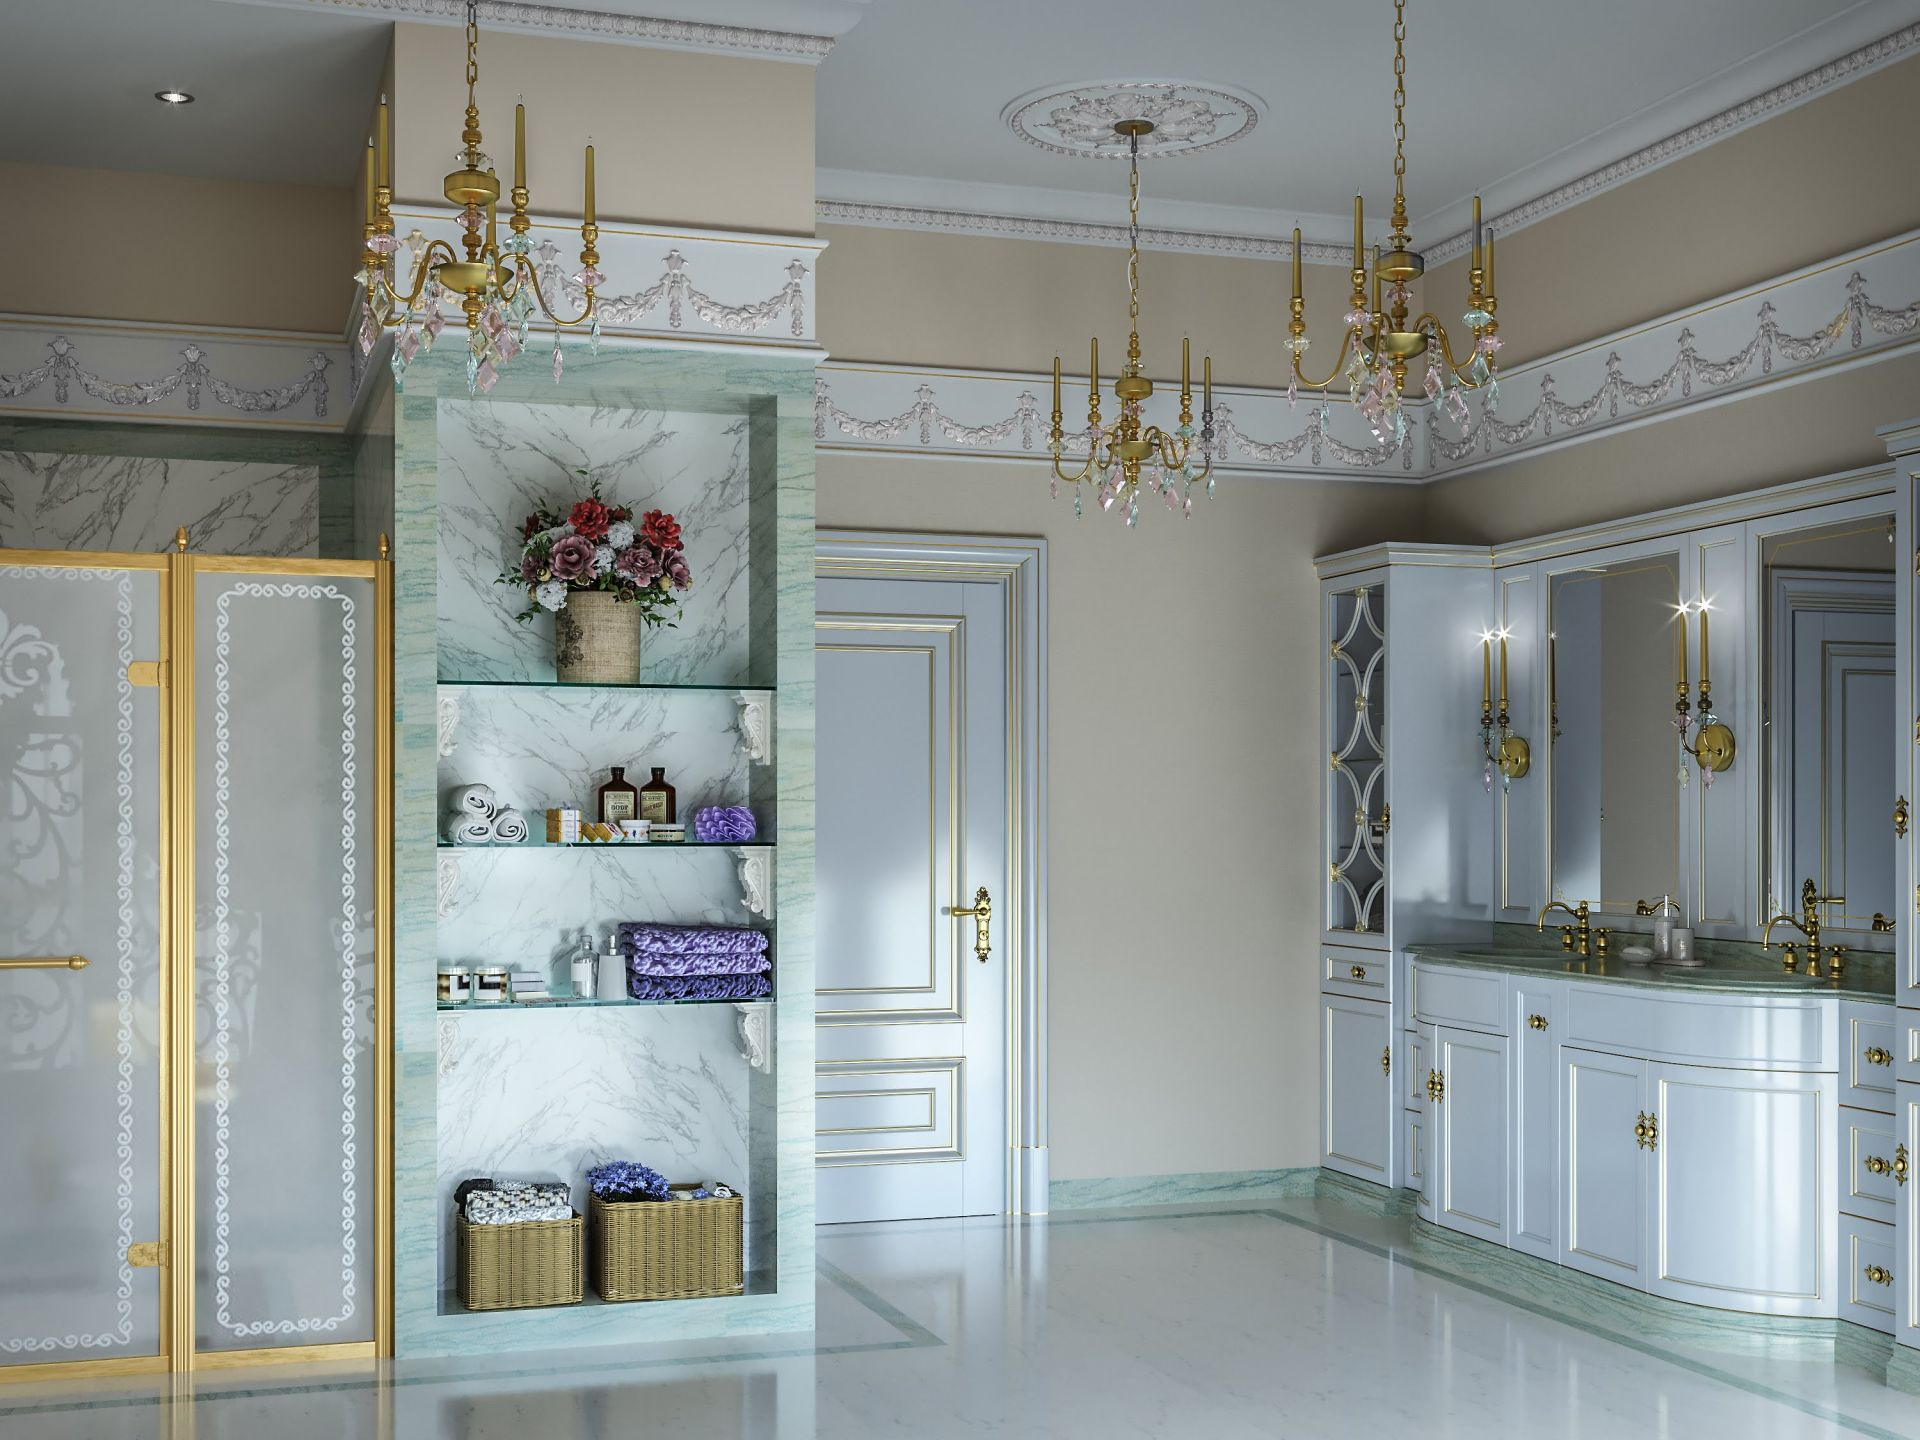 Design, Neoclassical style bathroom